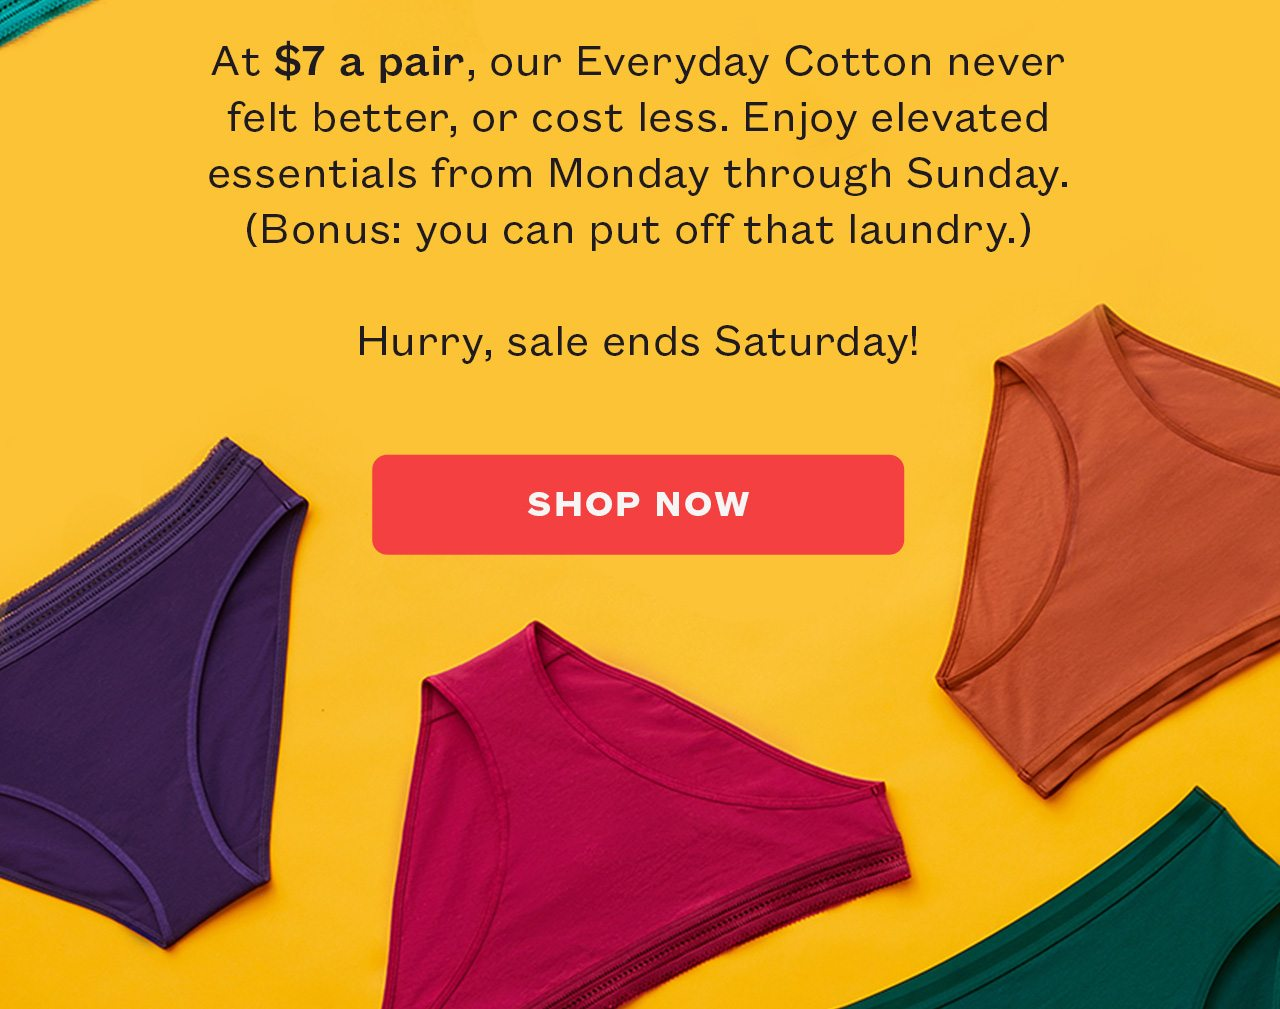 At $7 a pair, our Everyday Cotton never felt better, or cost less. Enjoy elevated essentials from Monday through Sunday.